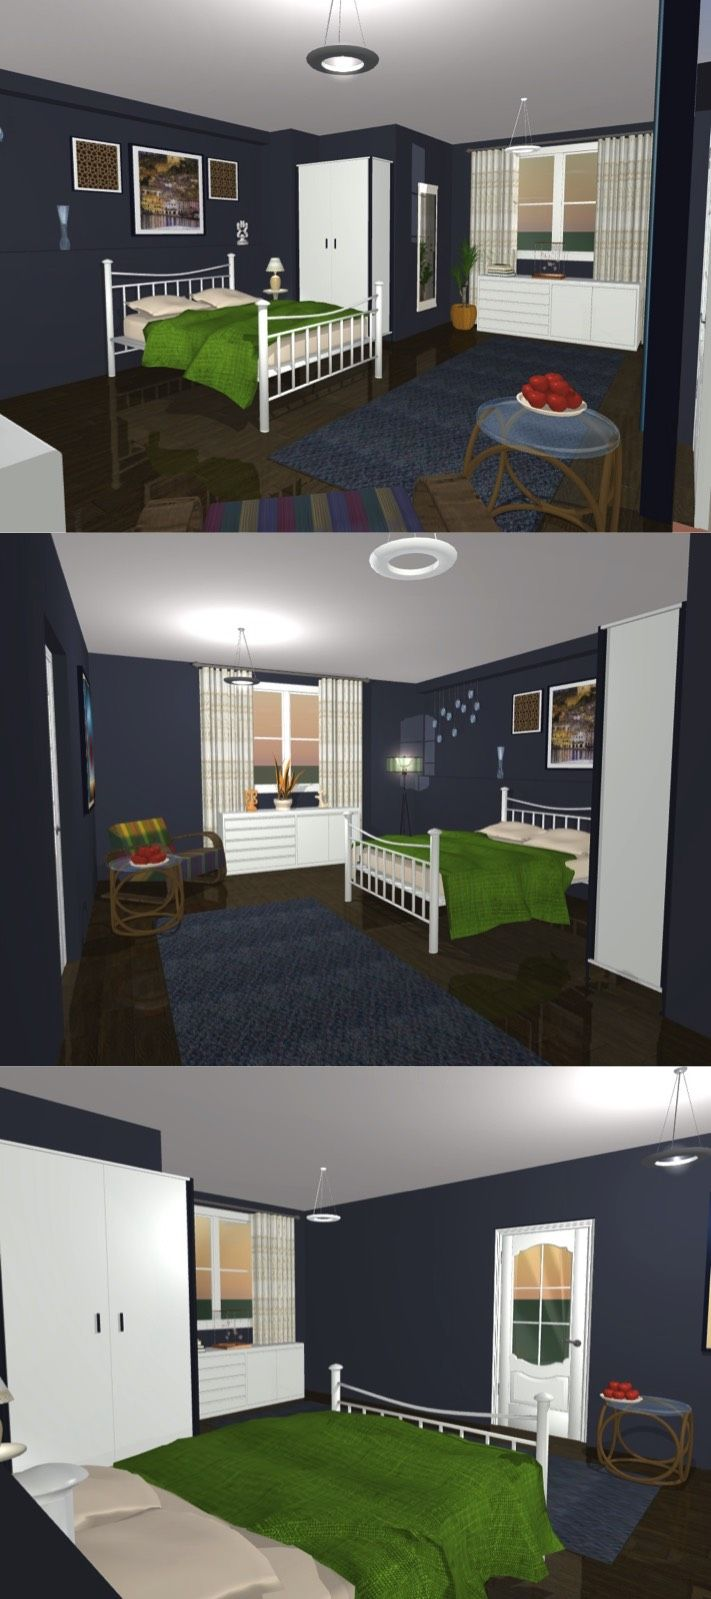 Learn How To Create Your Homedesign With Livehome3d Bedroom Bdroomdesign Interior Design Software Home Design Software House Design